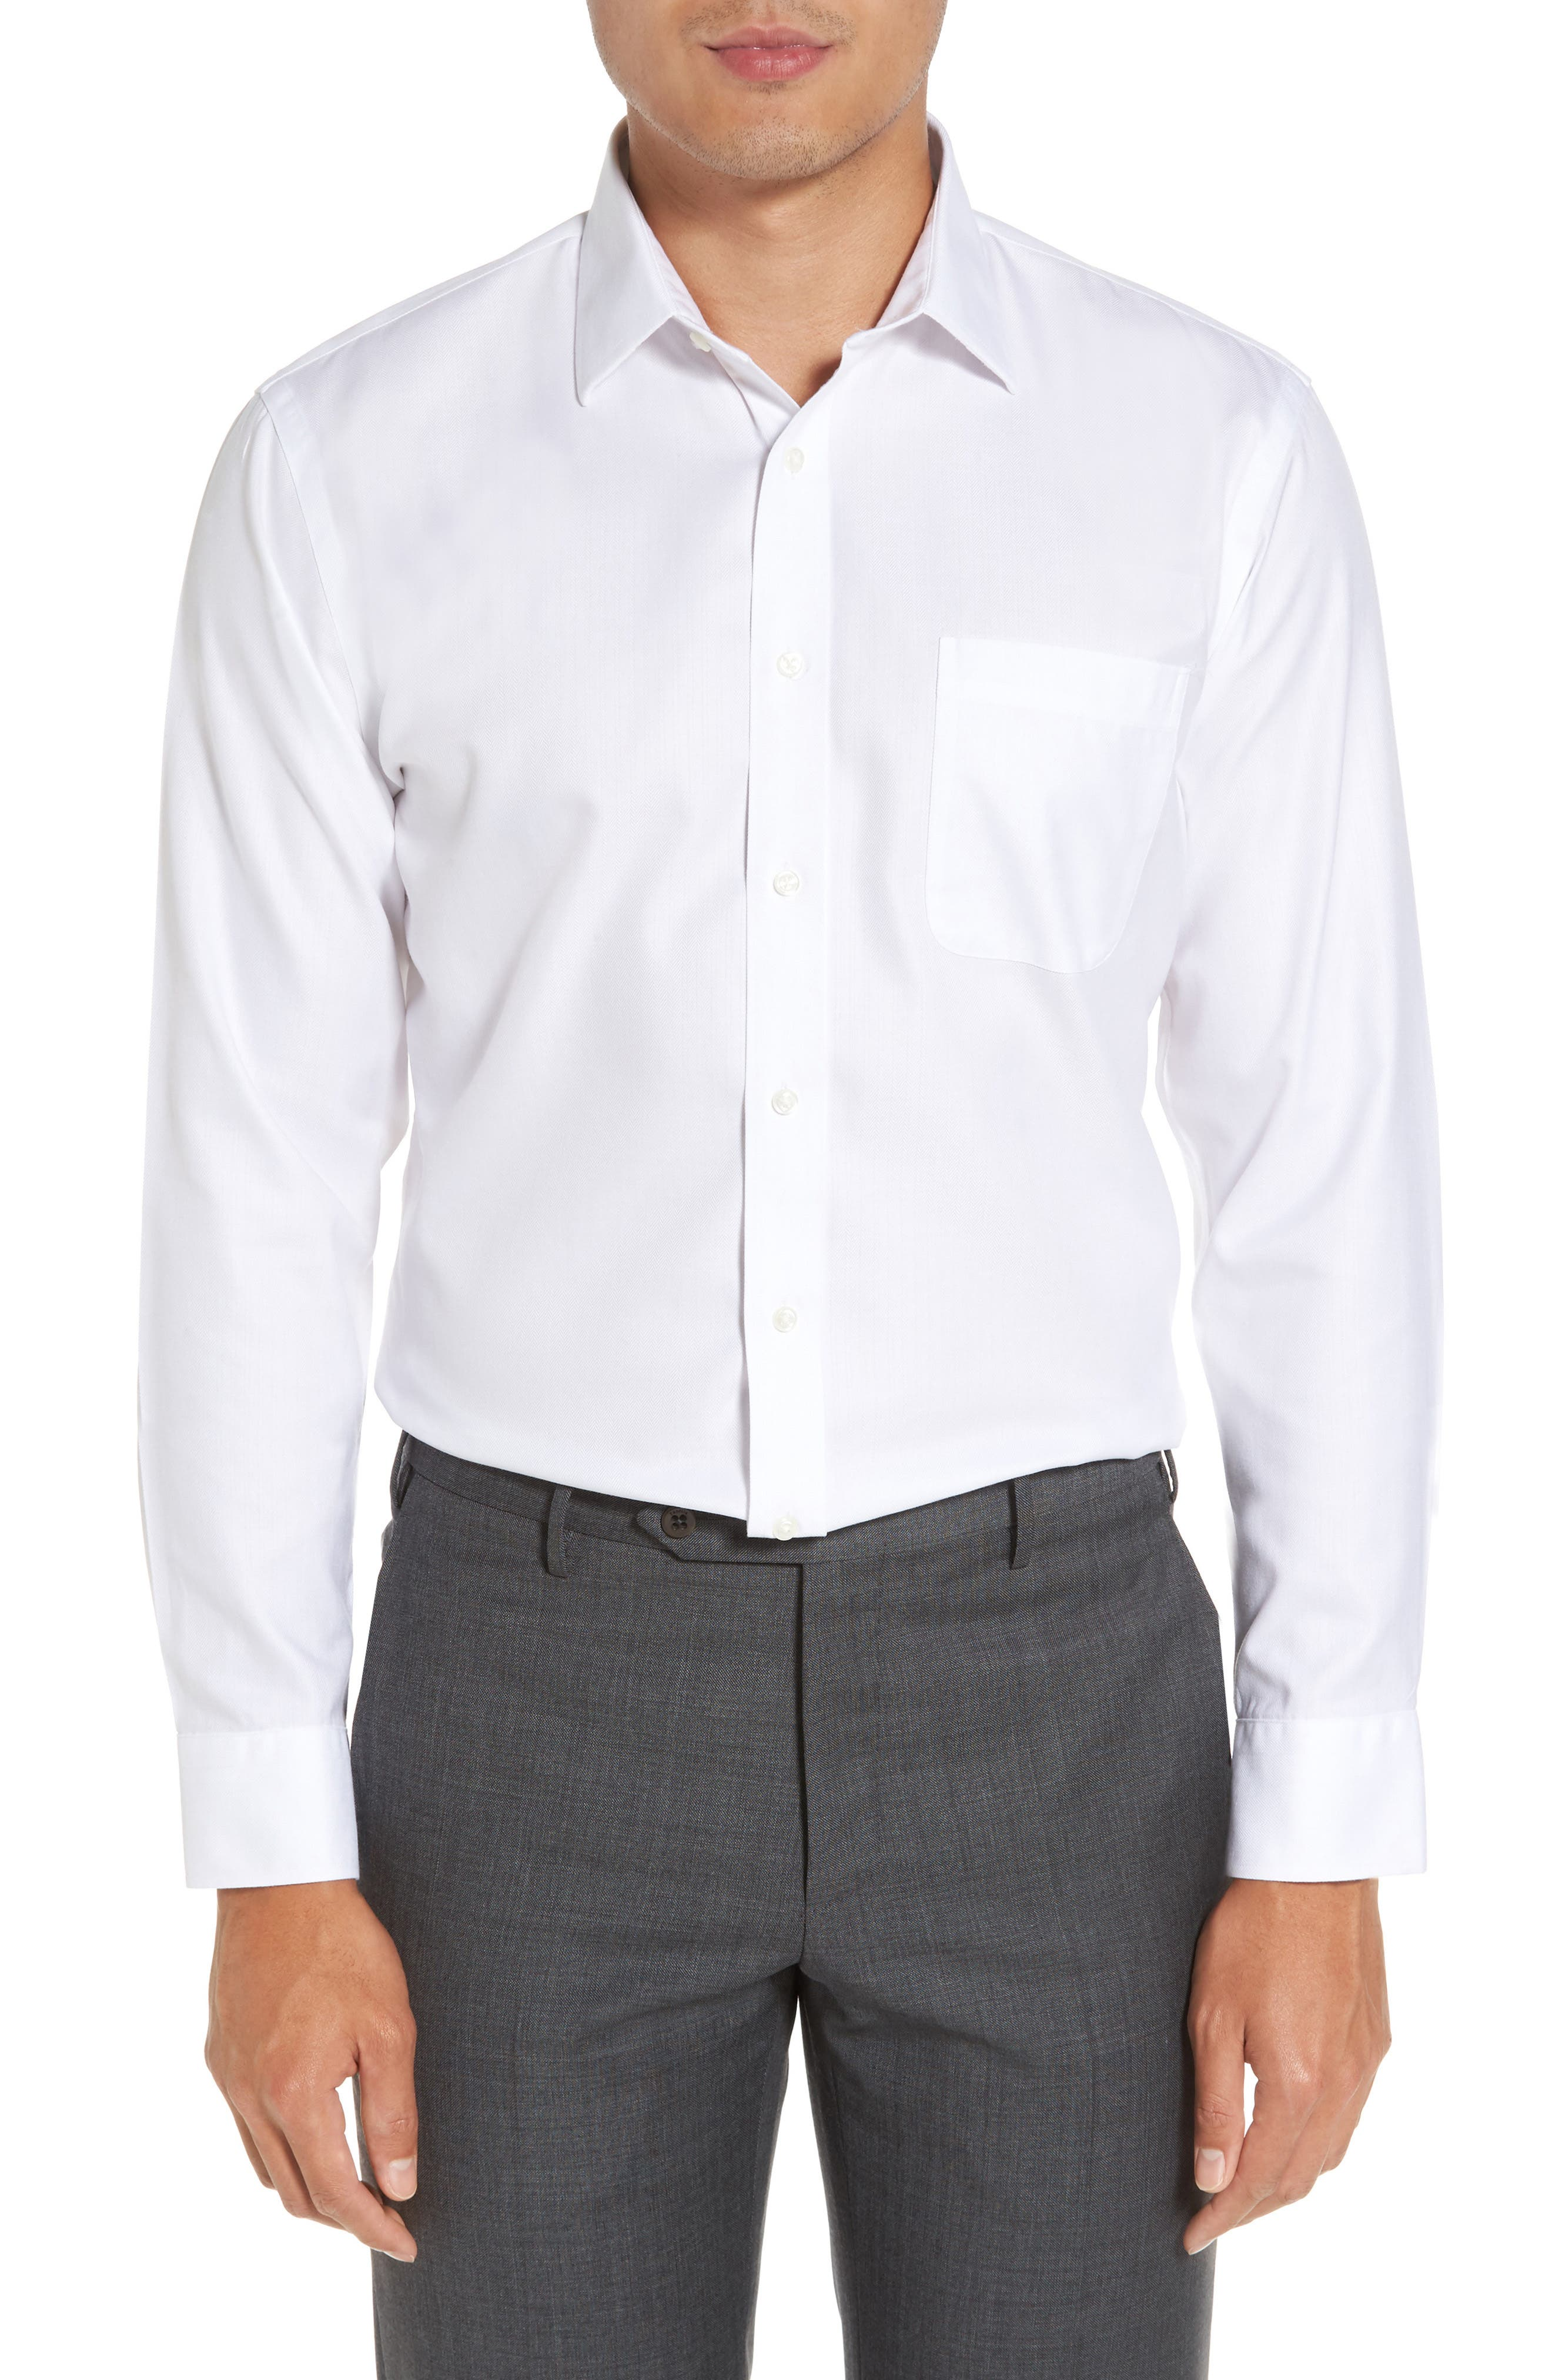 Nordstrom Shop Smartcare(TM) Trim Fit Herringbone Dress Shirt - White